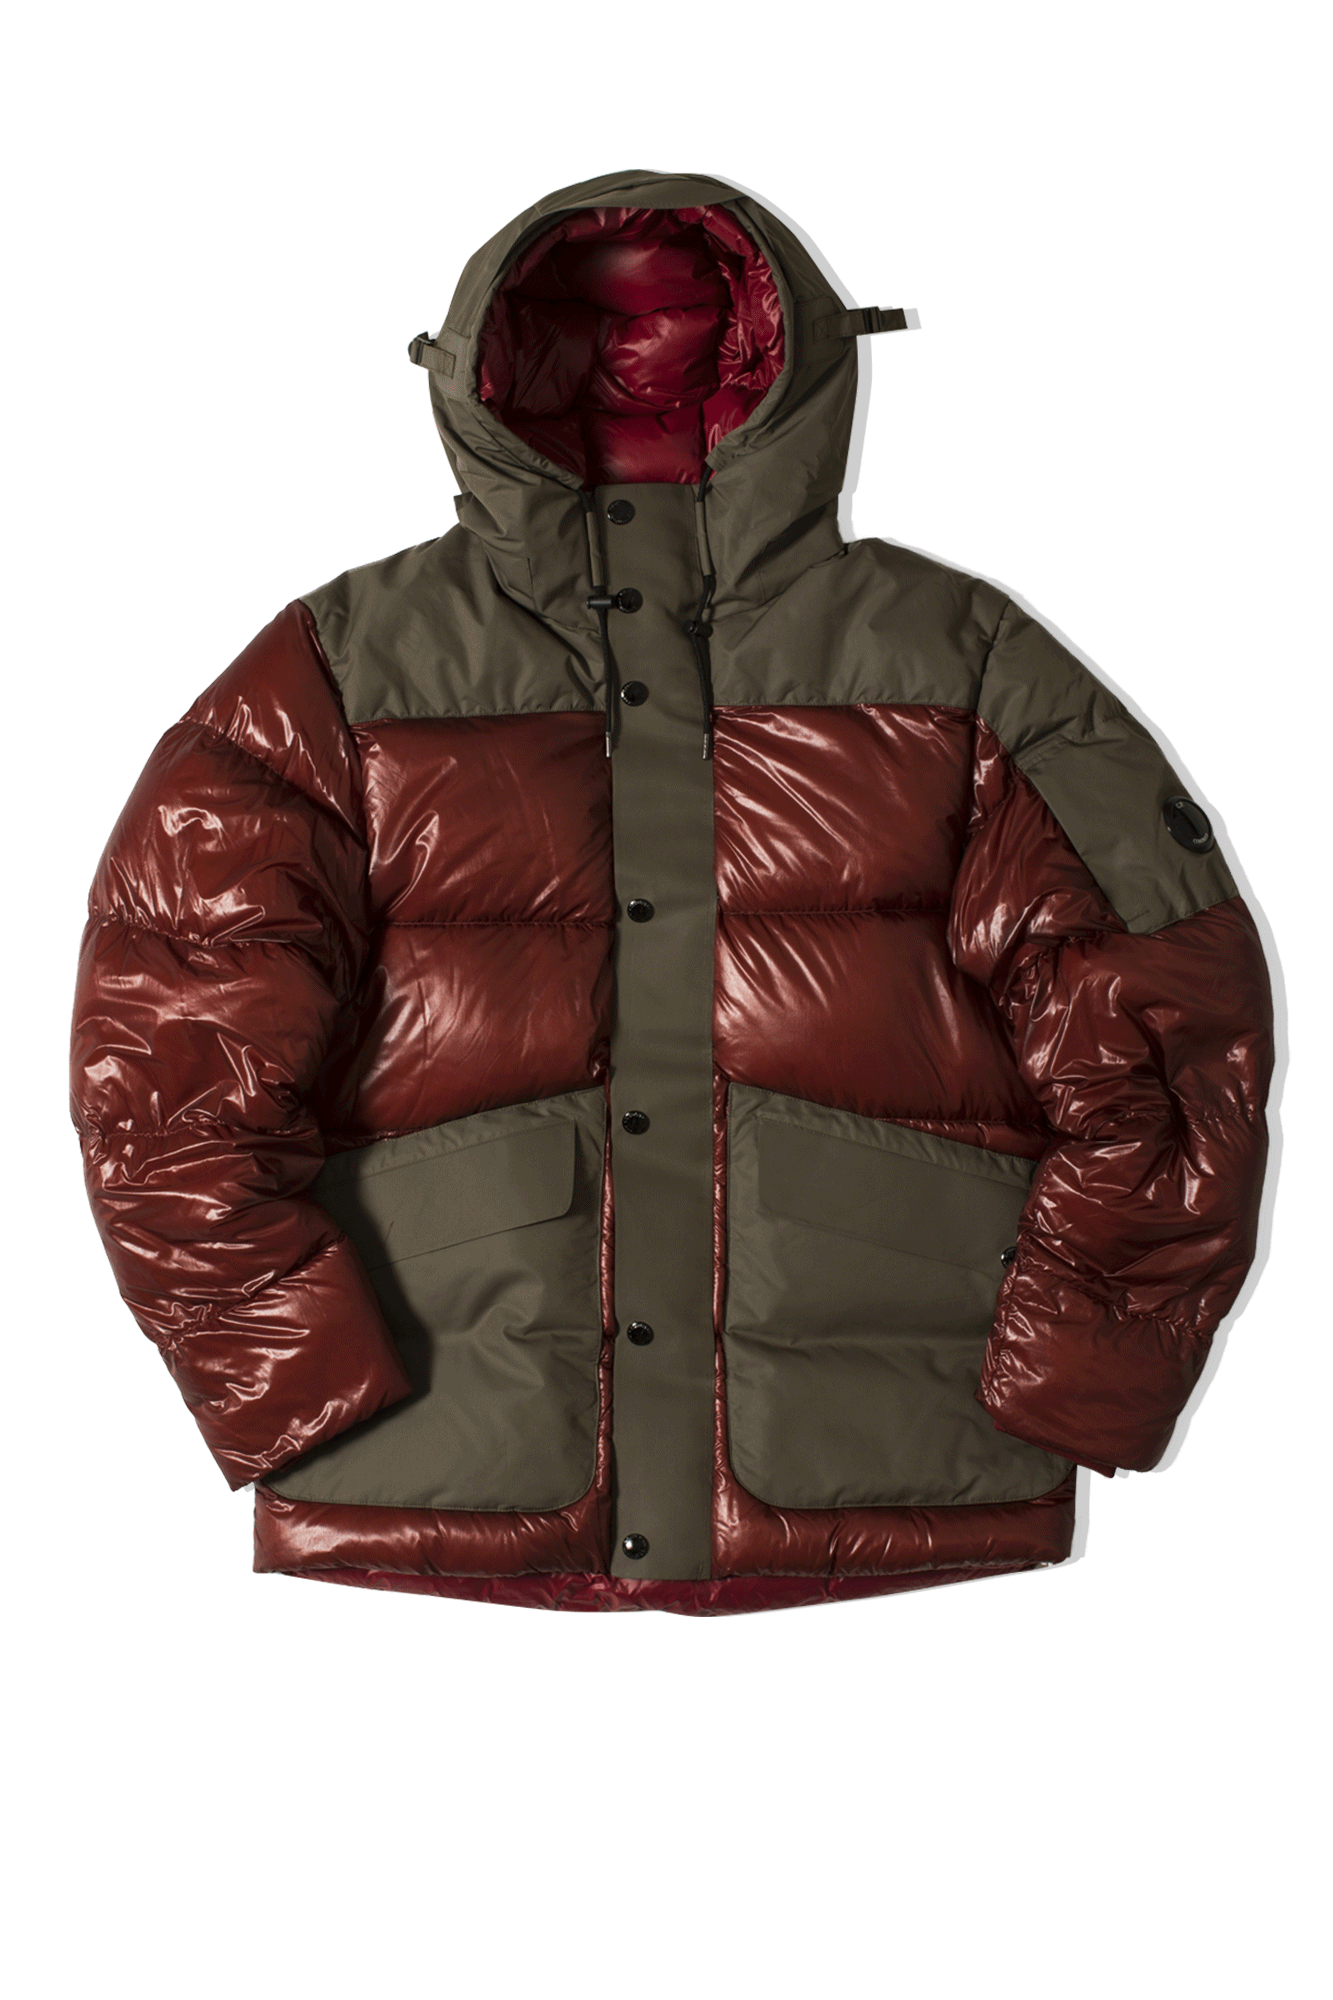 MEDIUM JACKET Red